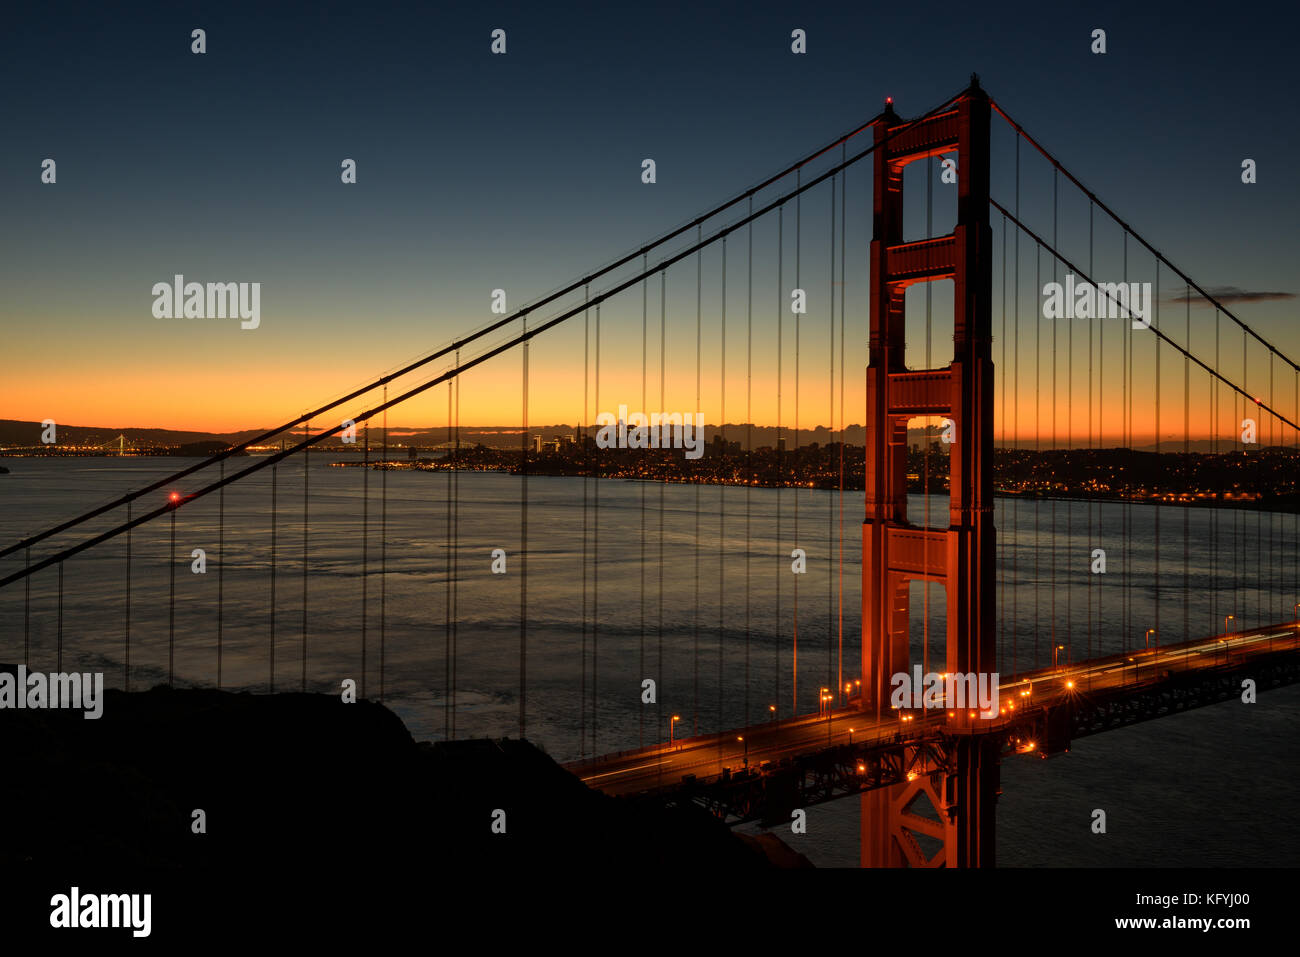 Beautiful Golden Gate the entrance to San Francisco, California, USA. Sunrise scene and down town as a background. - Stock Image